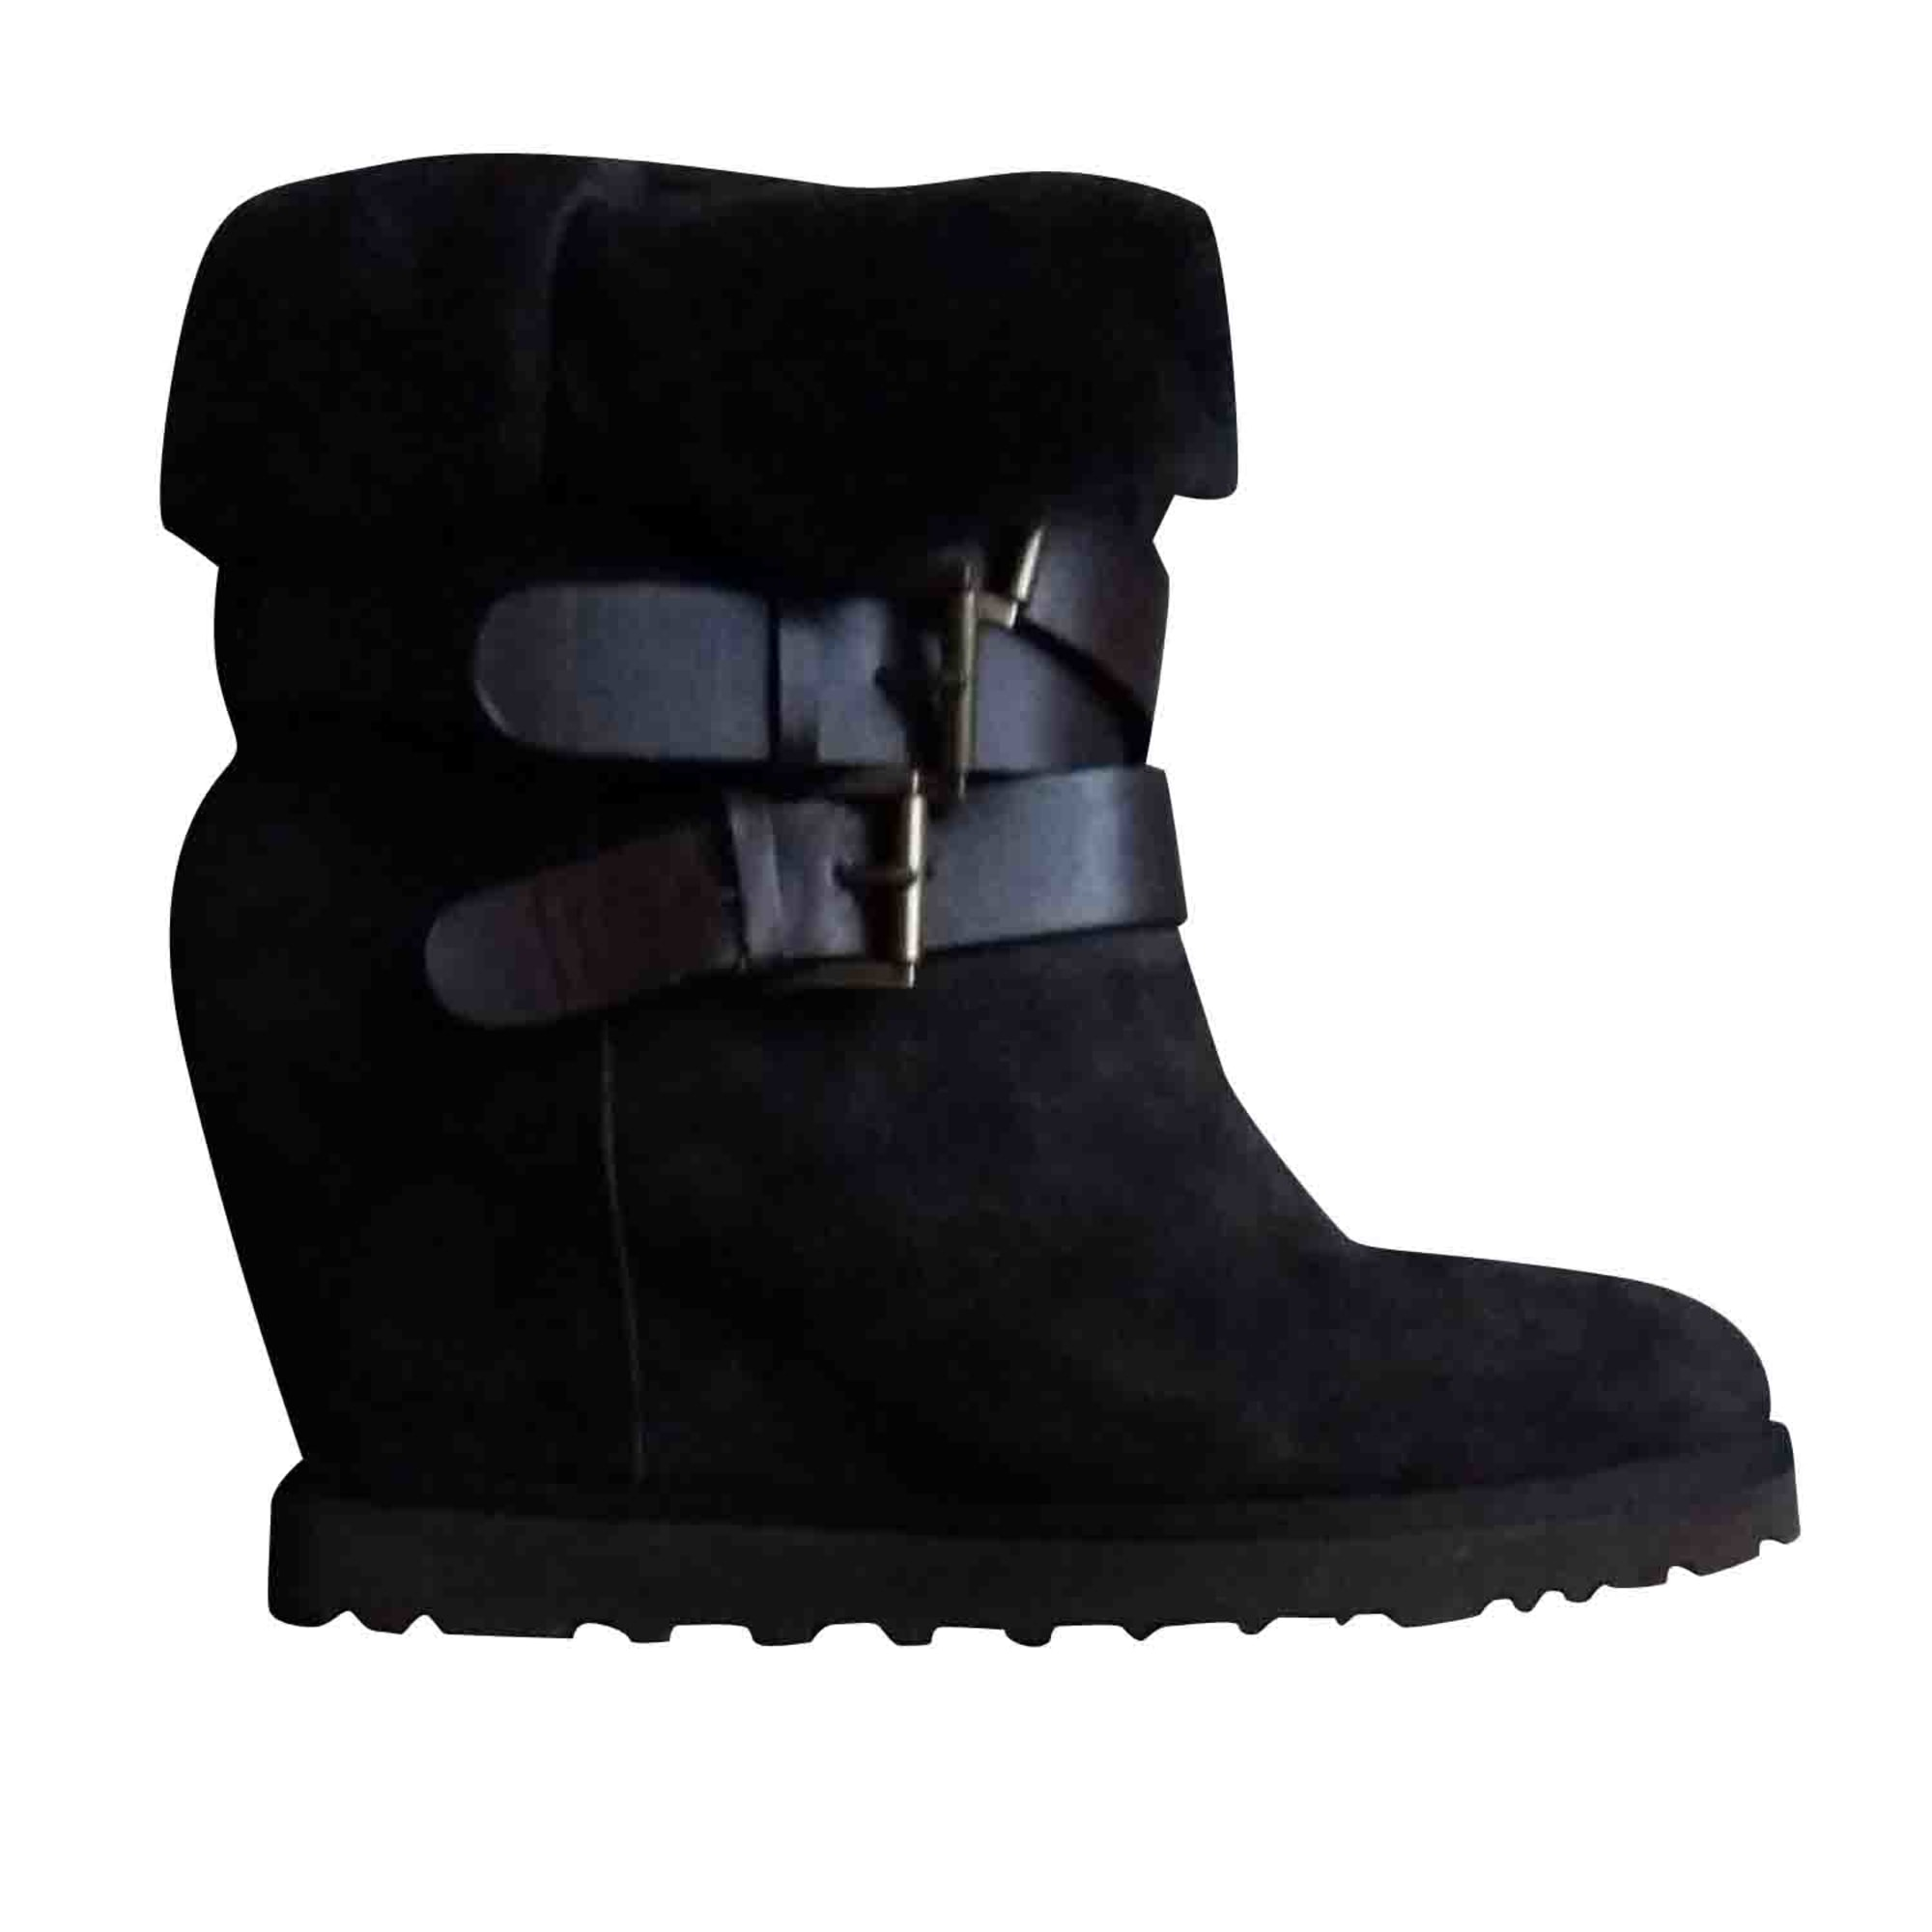 Bottinesamp; Low À Marron Compensés Ash 41 8104077 Boots 0mNPnvOy8w